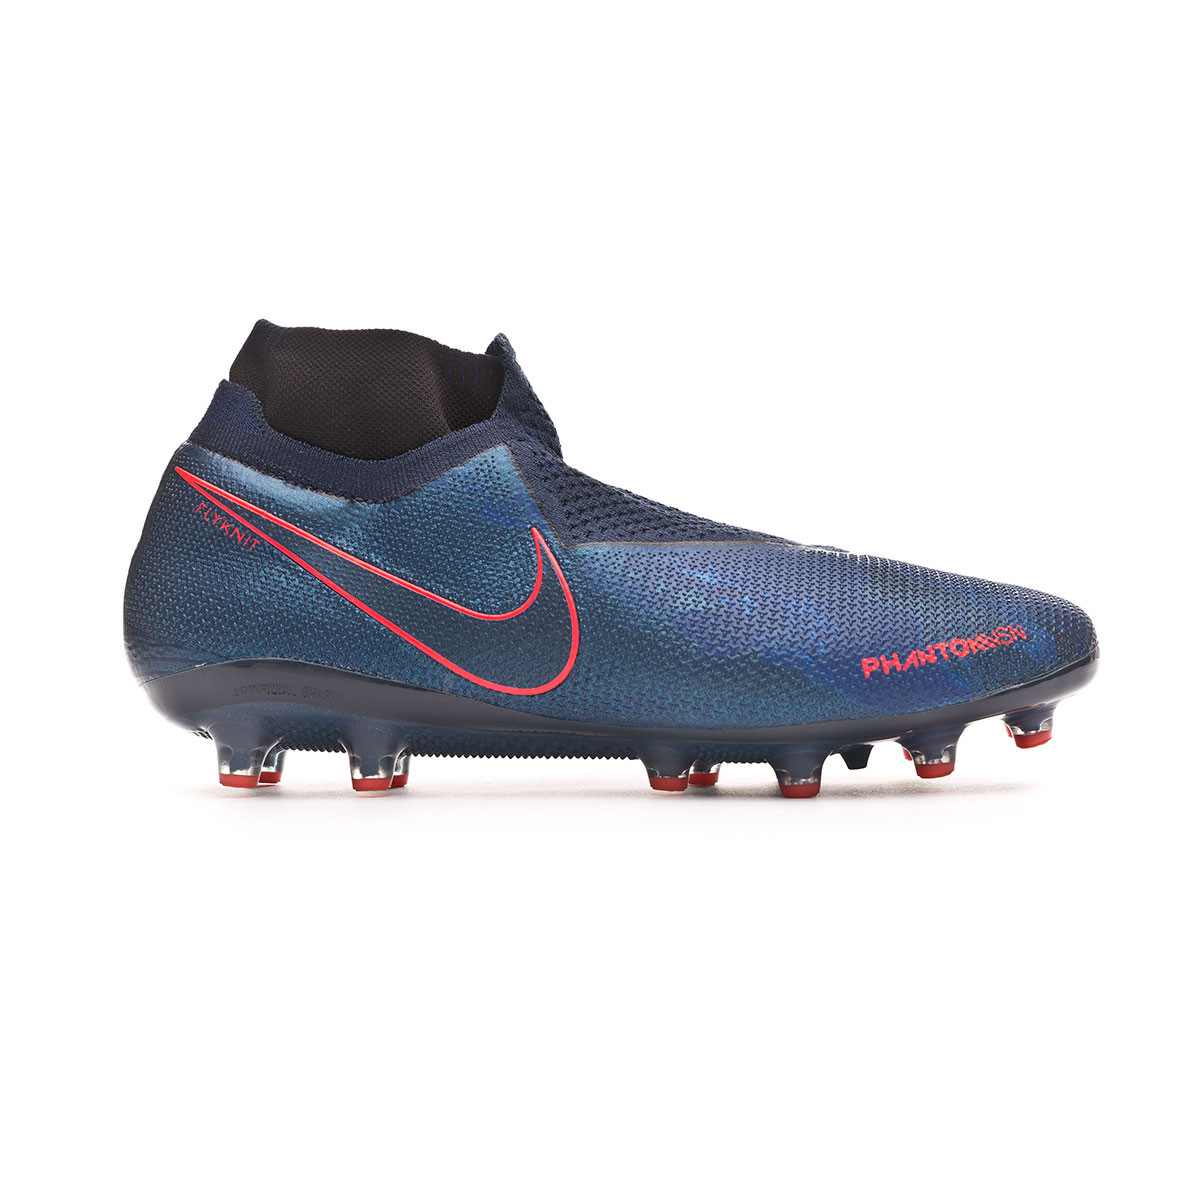 Ataque de nervios recuperar Acurrucarse  Football Boots Nike Phantom Vision Elite DF AG-Pro Obsidian-Black-Blue void  - Football store Fútbol Emotion